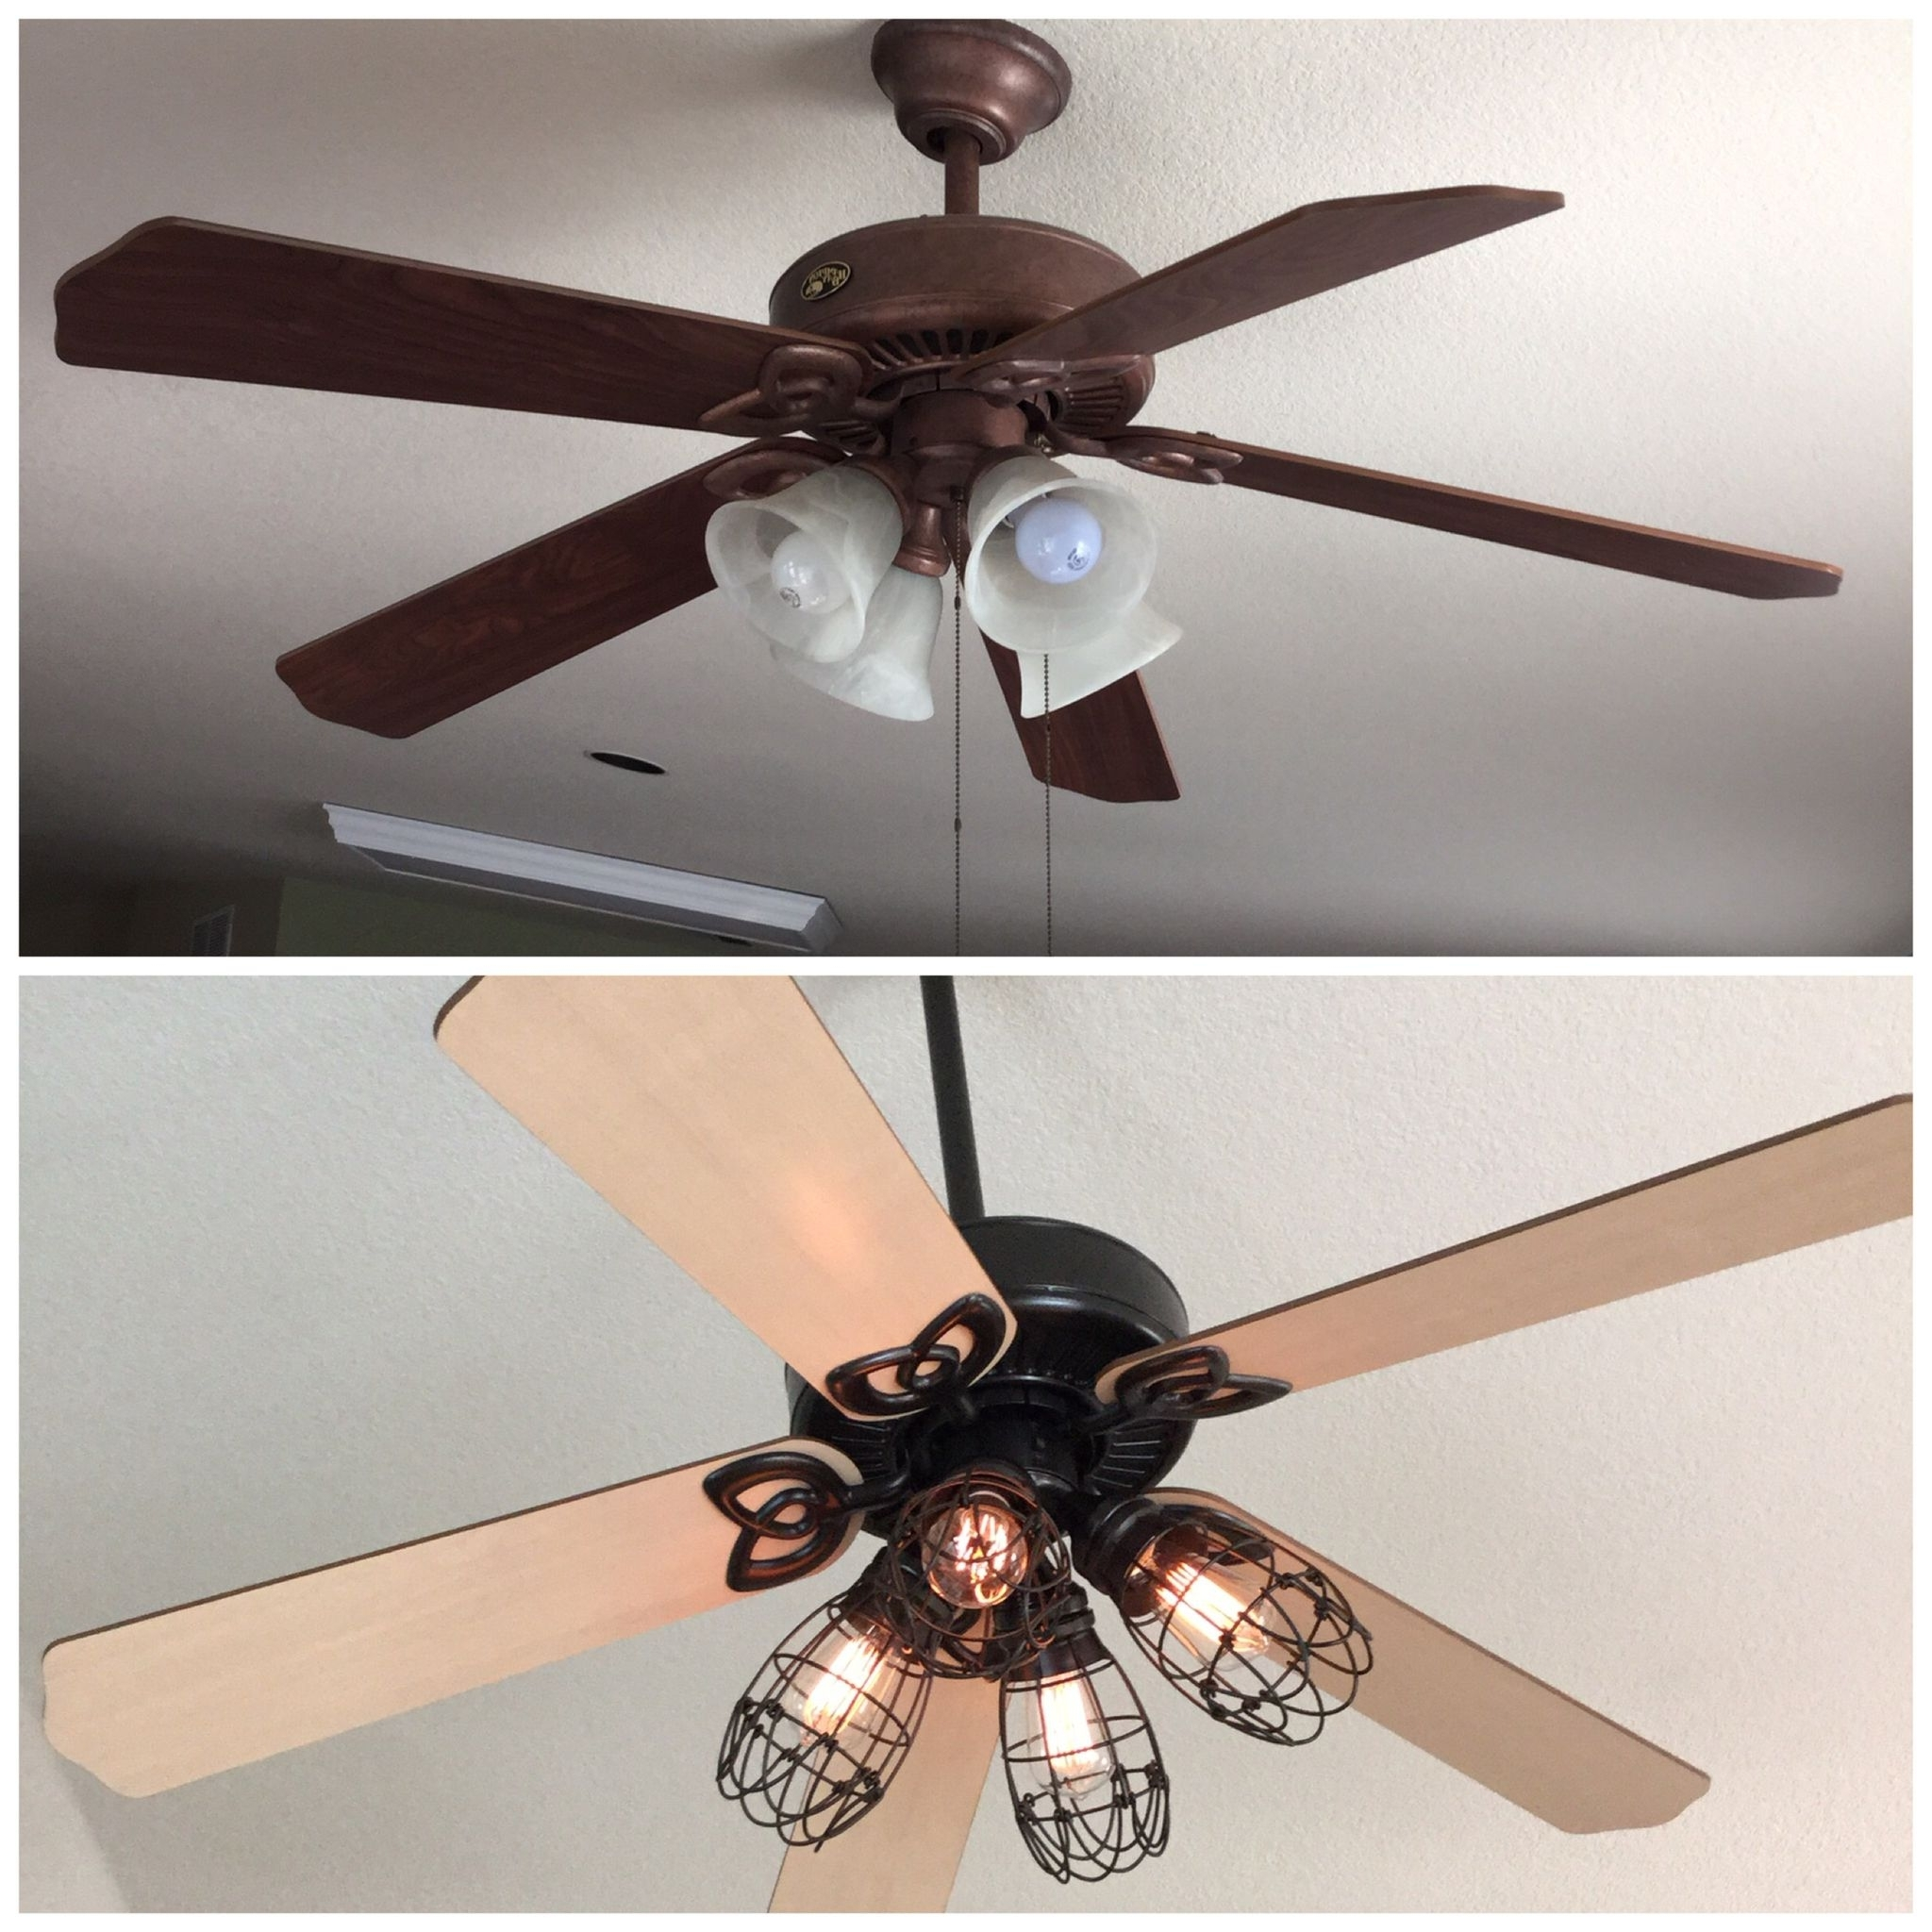 Newest Outdoor Ceiling Fans With Guard Intended For Diy Ceiling Fan Makeover: Add Cage Bulb Guards And Edison Bulbs (View 10 of 20)